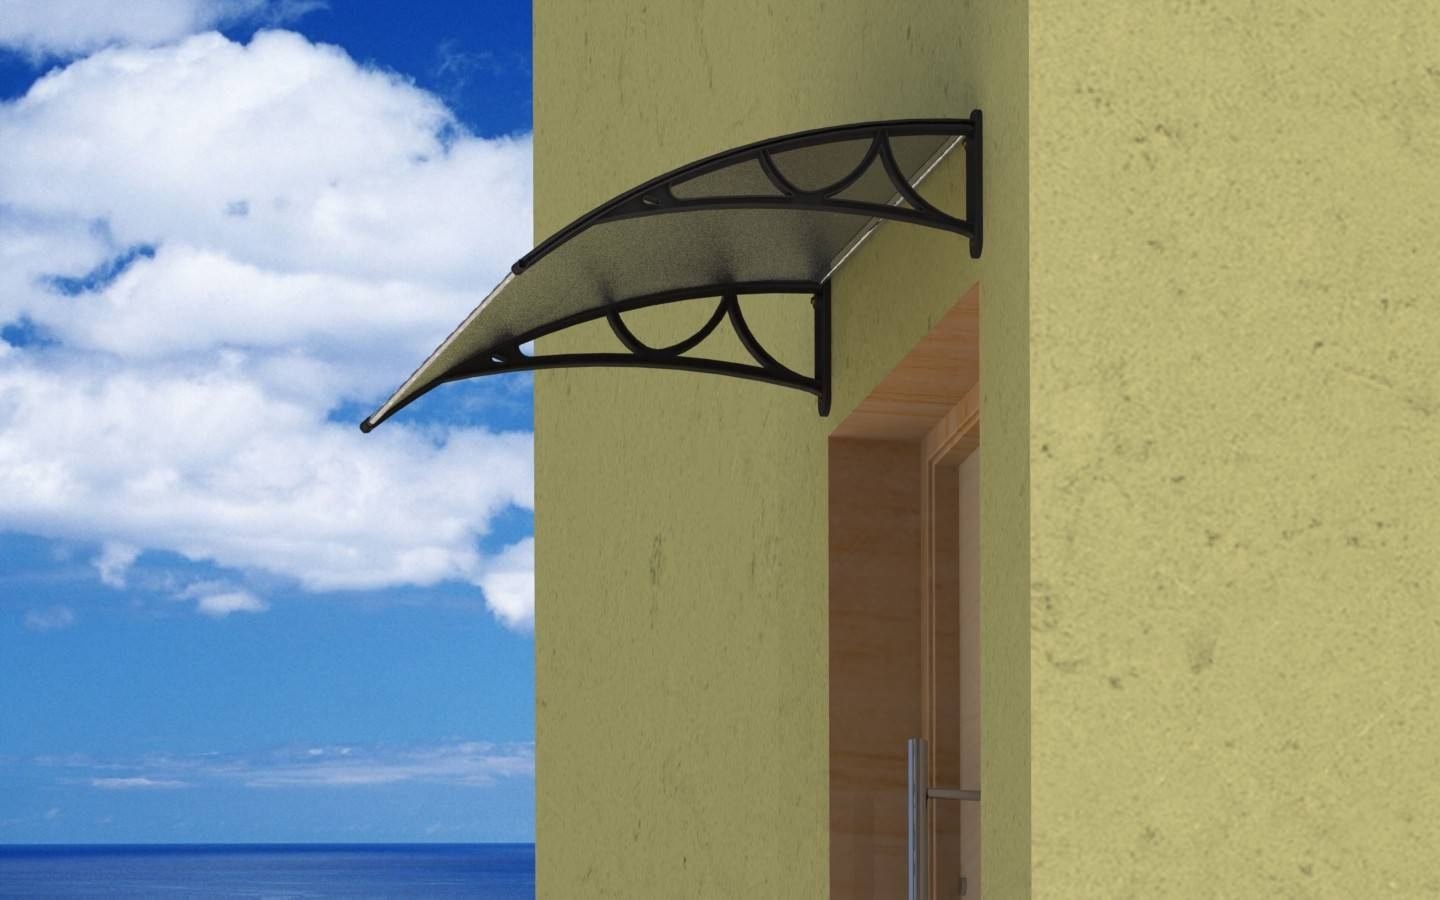 PC Canopy,Metal Canopy,Alu Canopy,DIY Canopy,Window Awning,Roofing